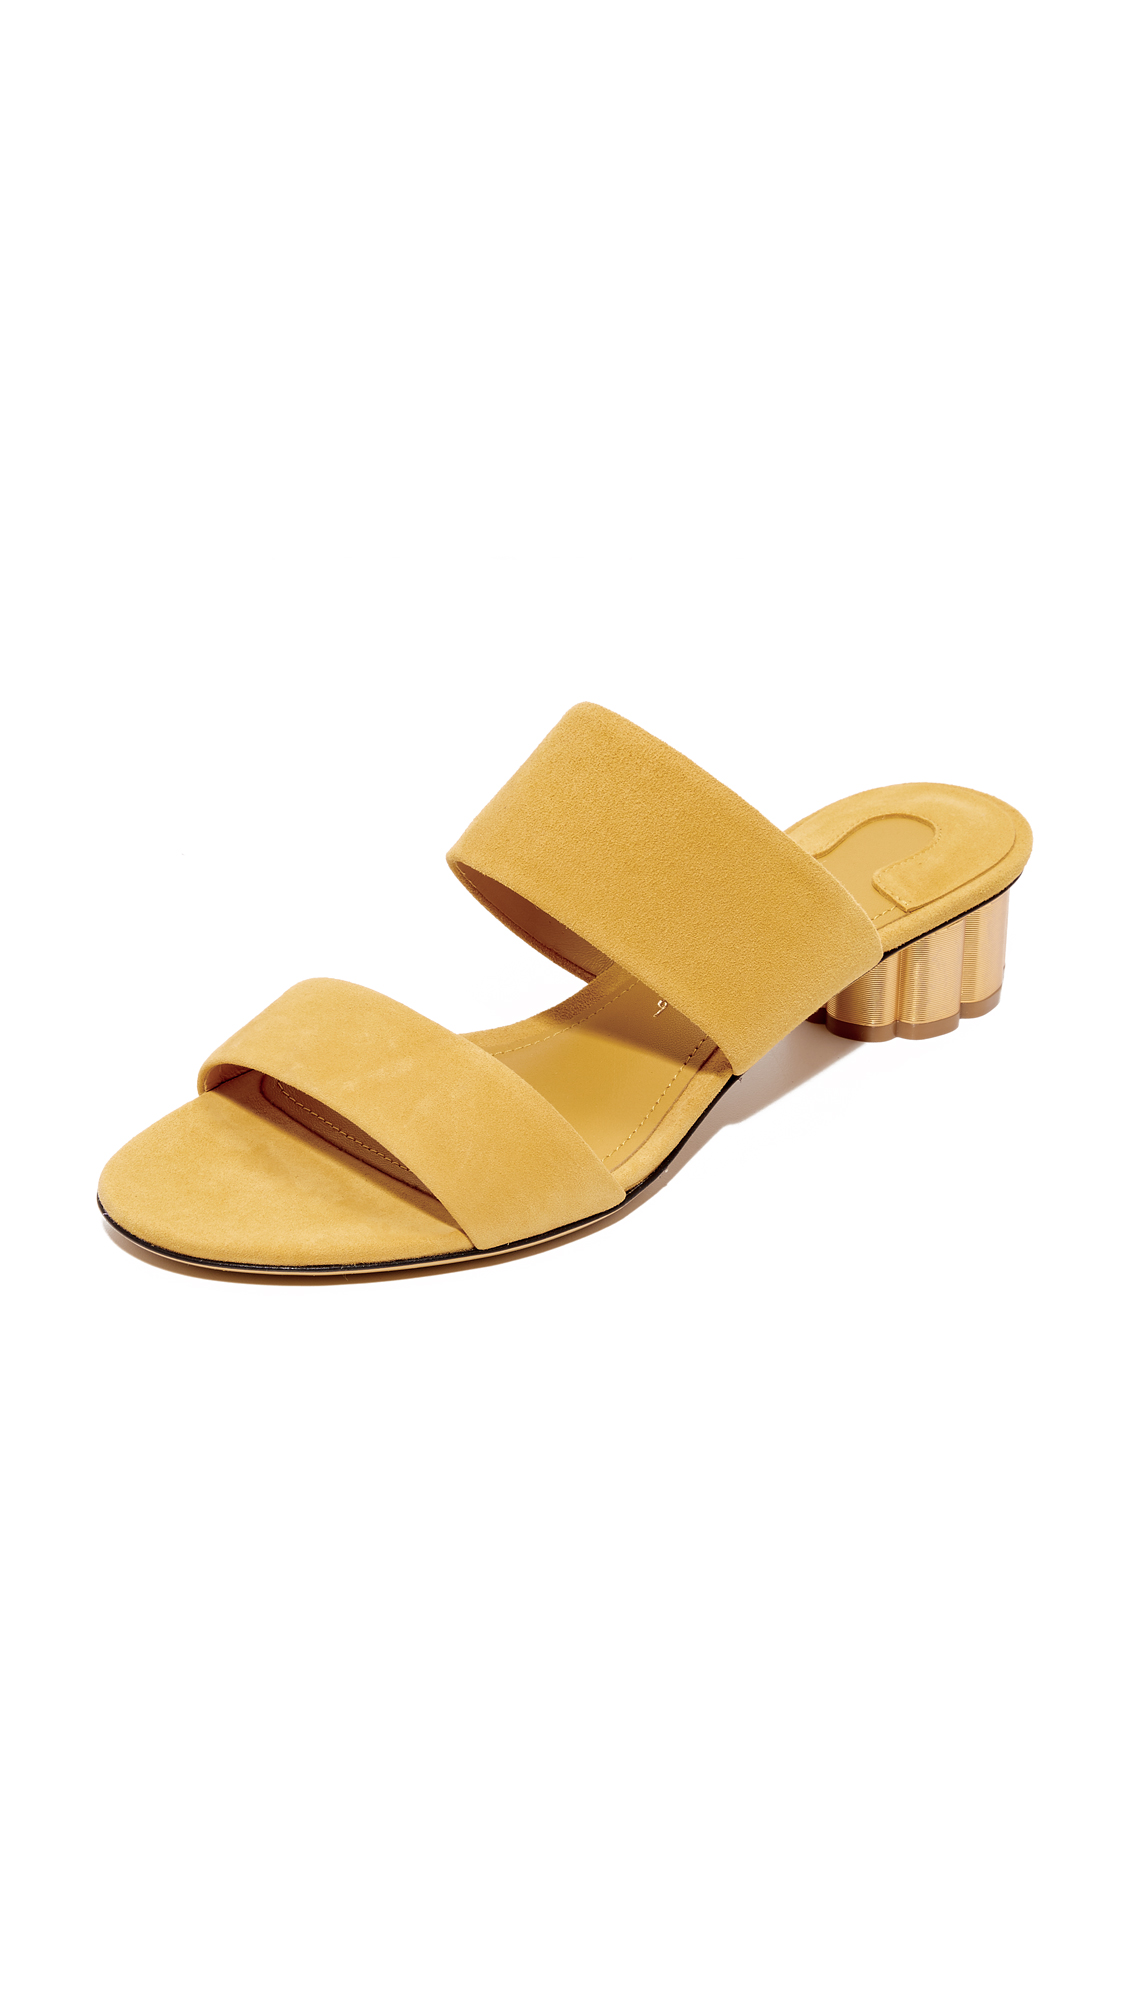 Salvatore Ferragamo Belluno City Slides - Indian Yellow